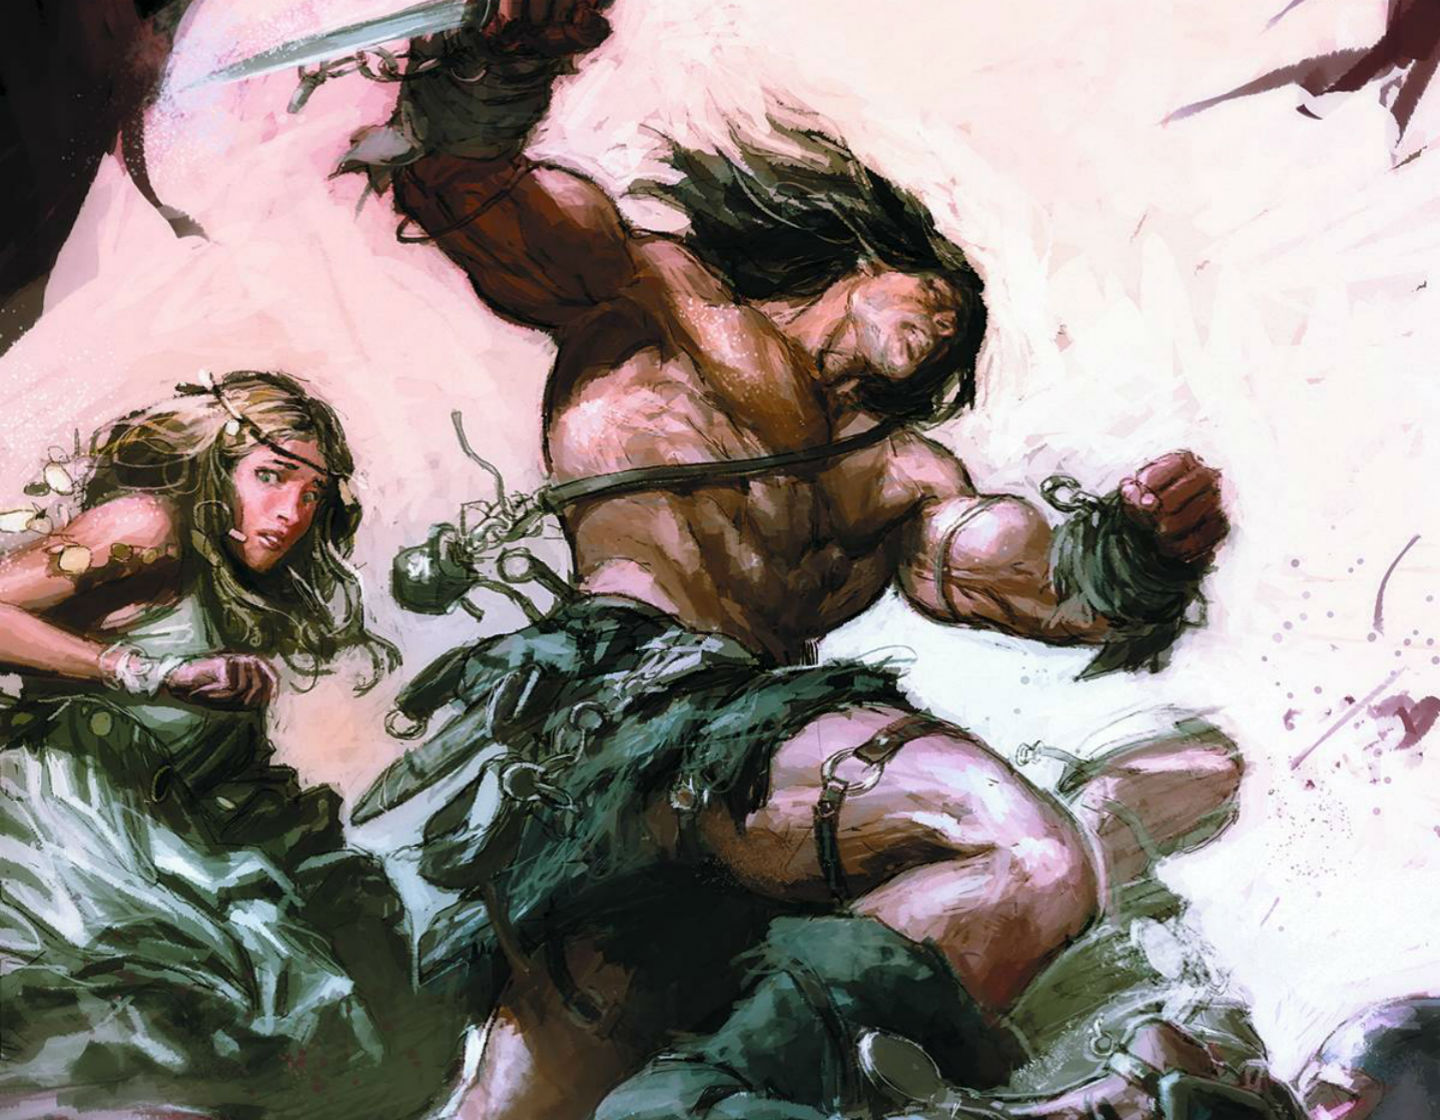 CONAN THE BARBARIAN fq wallpaper | 1440x1120 | 140194 ...